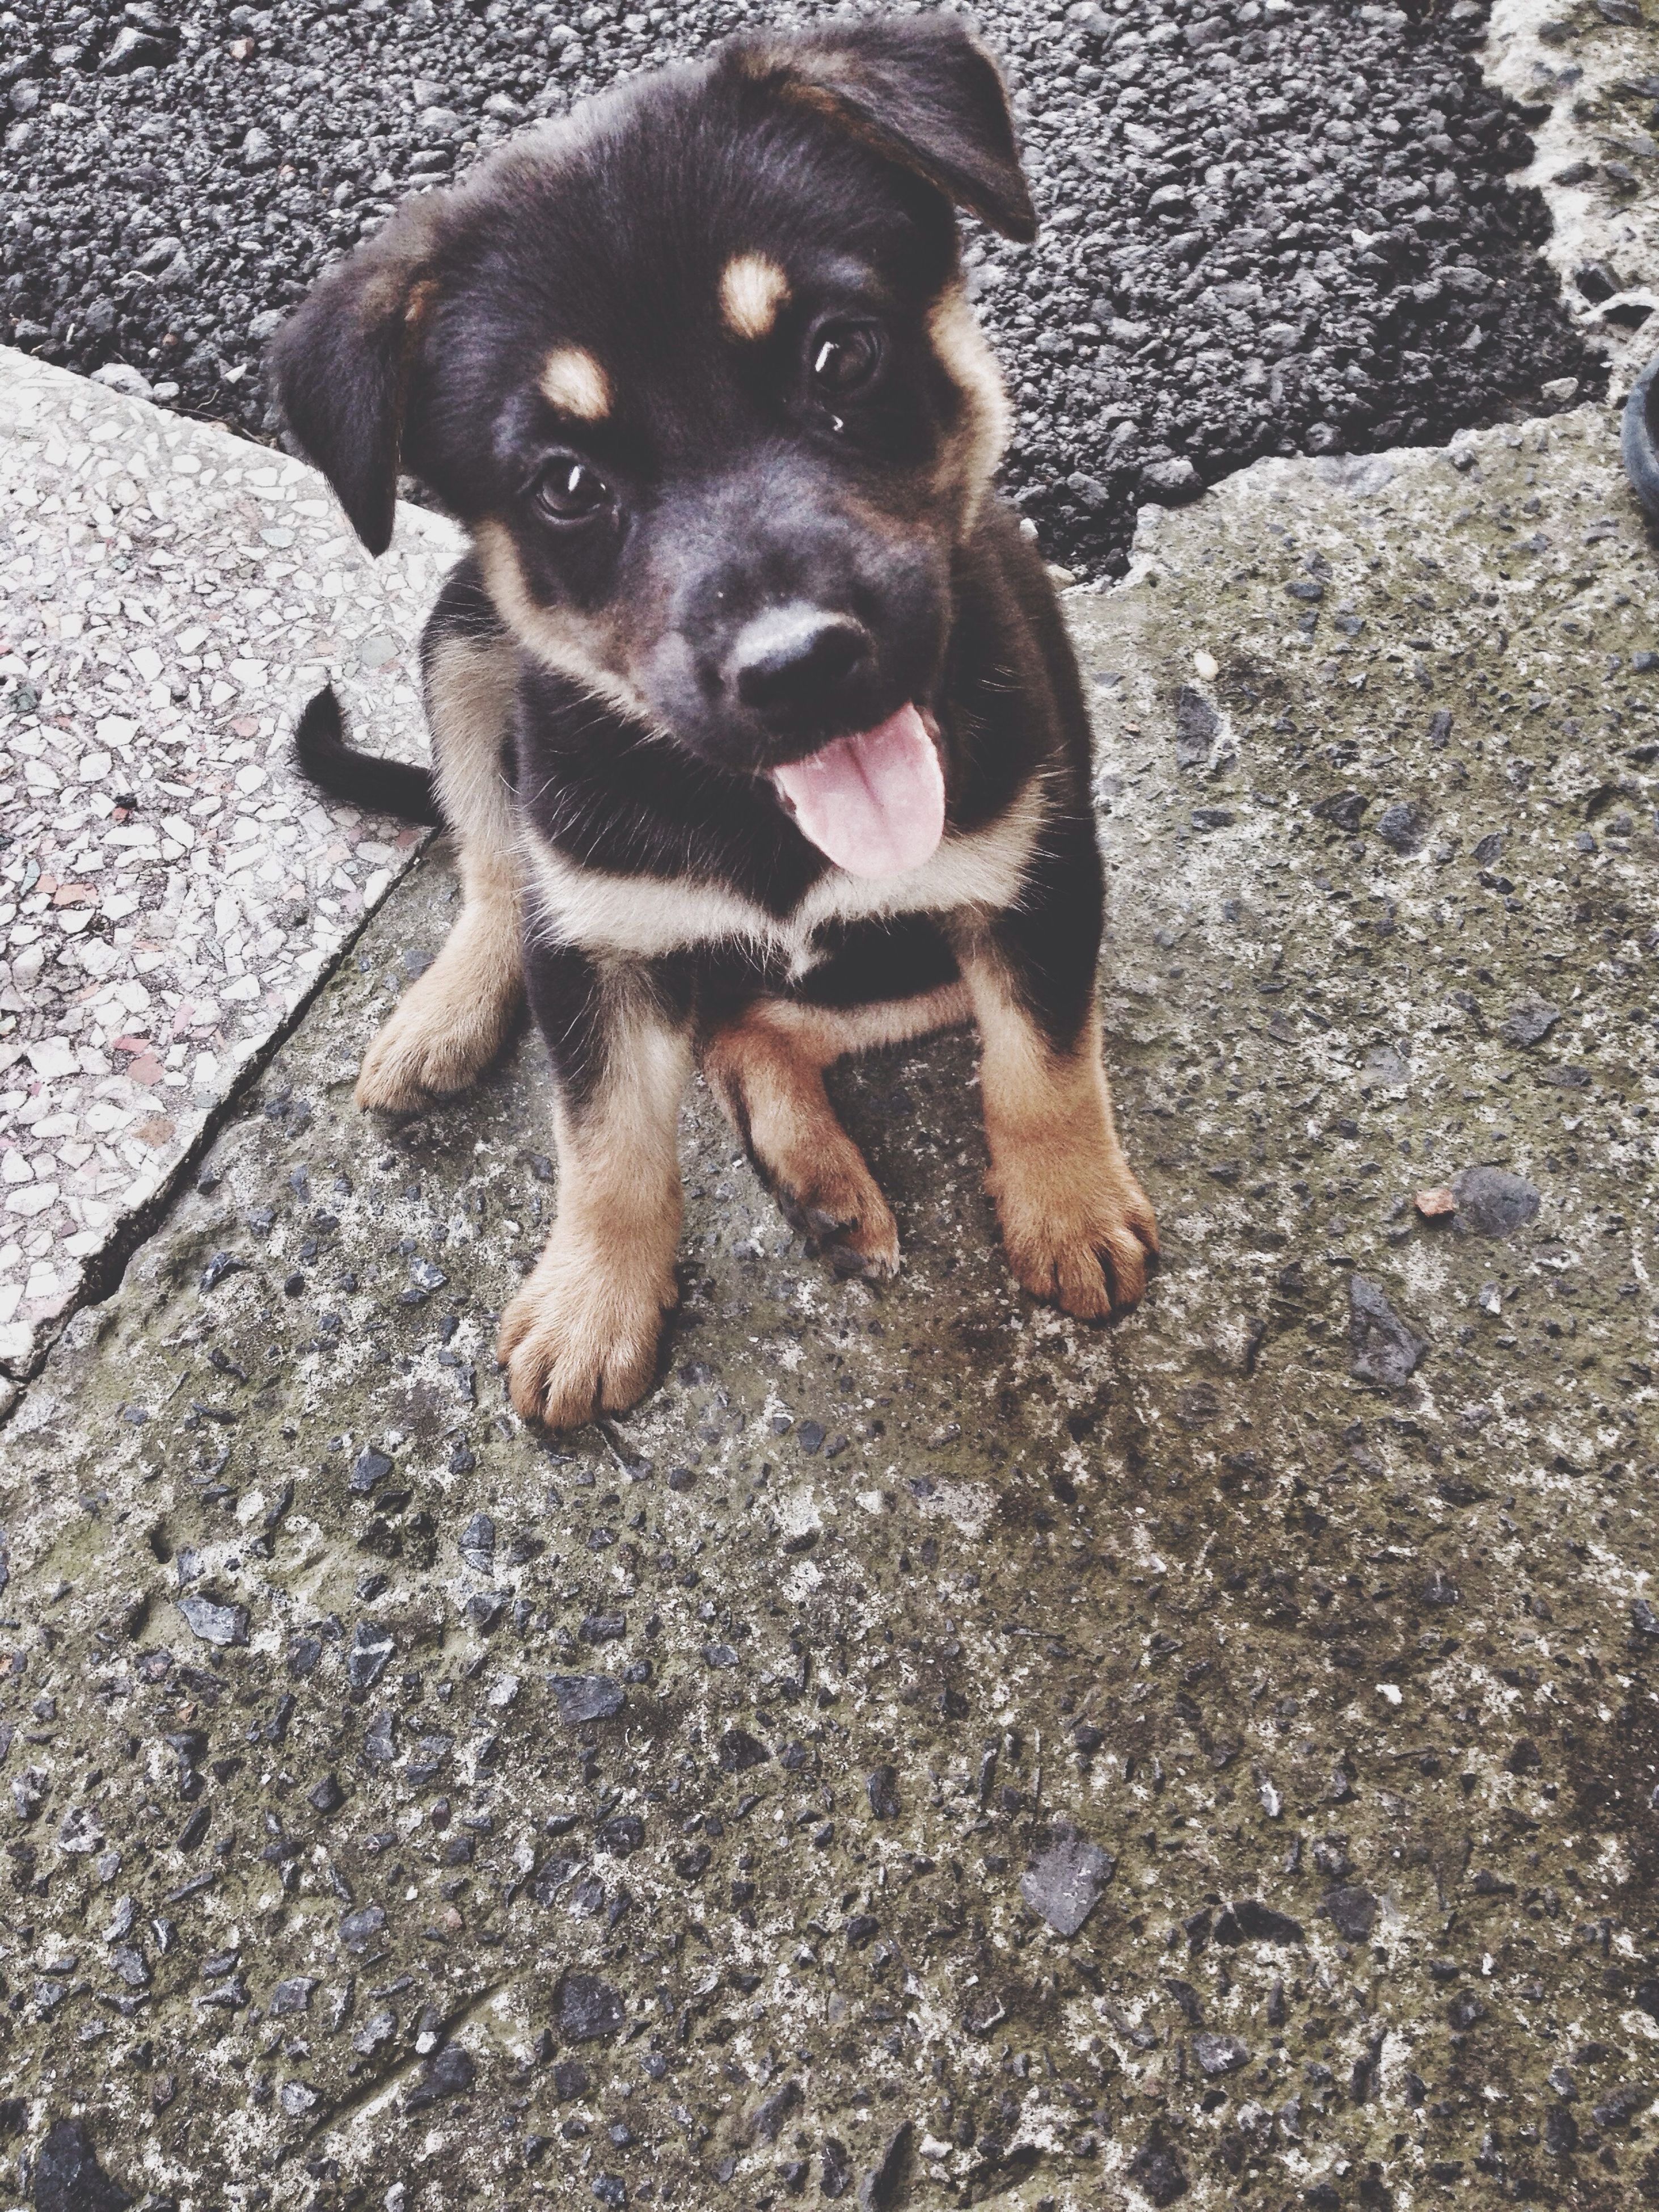 pets, dog, animal themes, one animal, domestic animals, mammal, high angle view, looking at camera, portrait, sitting, street, canine, pet collar, day, full length, outdoors, relaxation, puppy, sunlight, black color